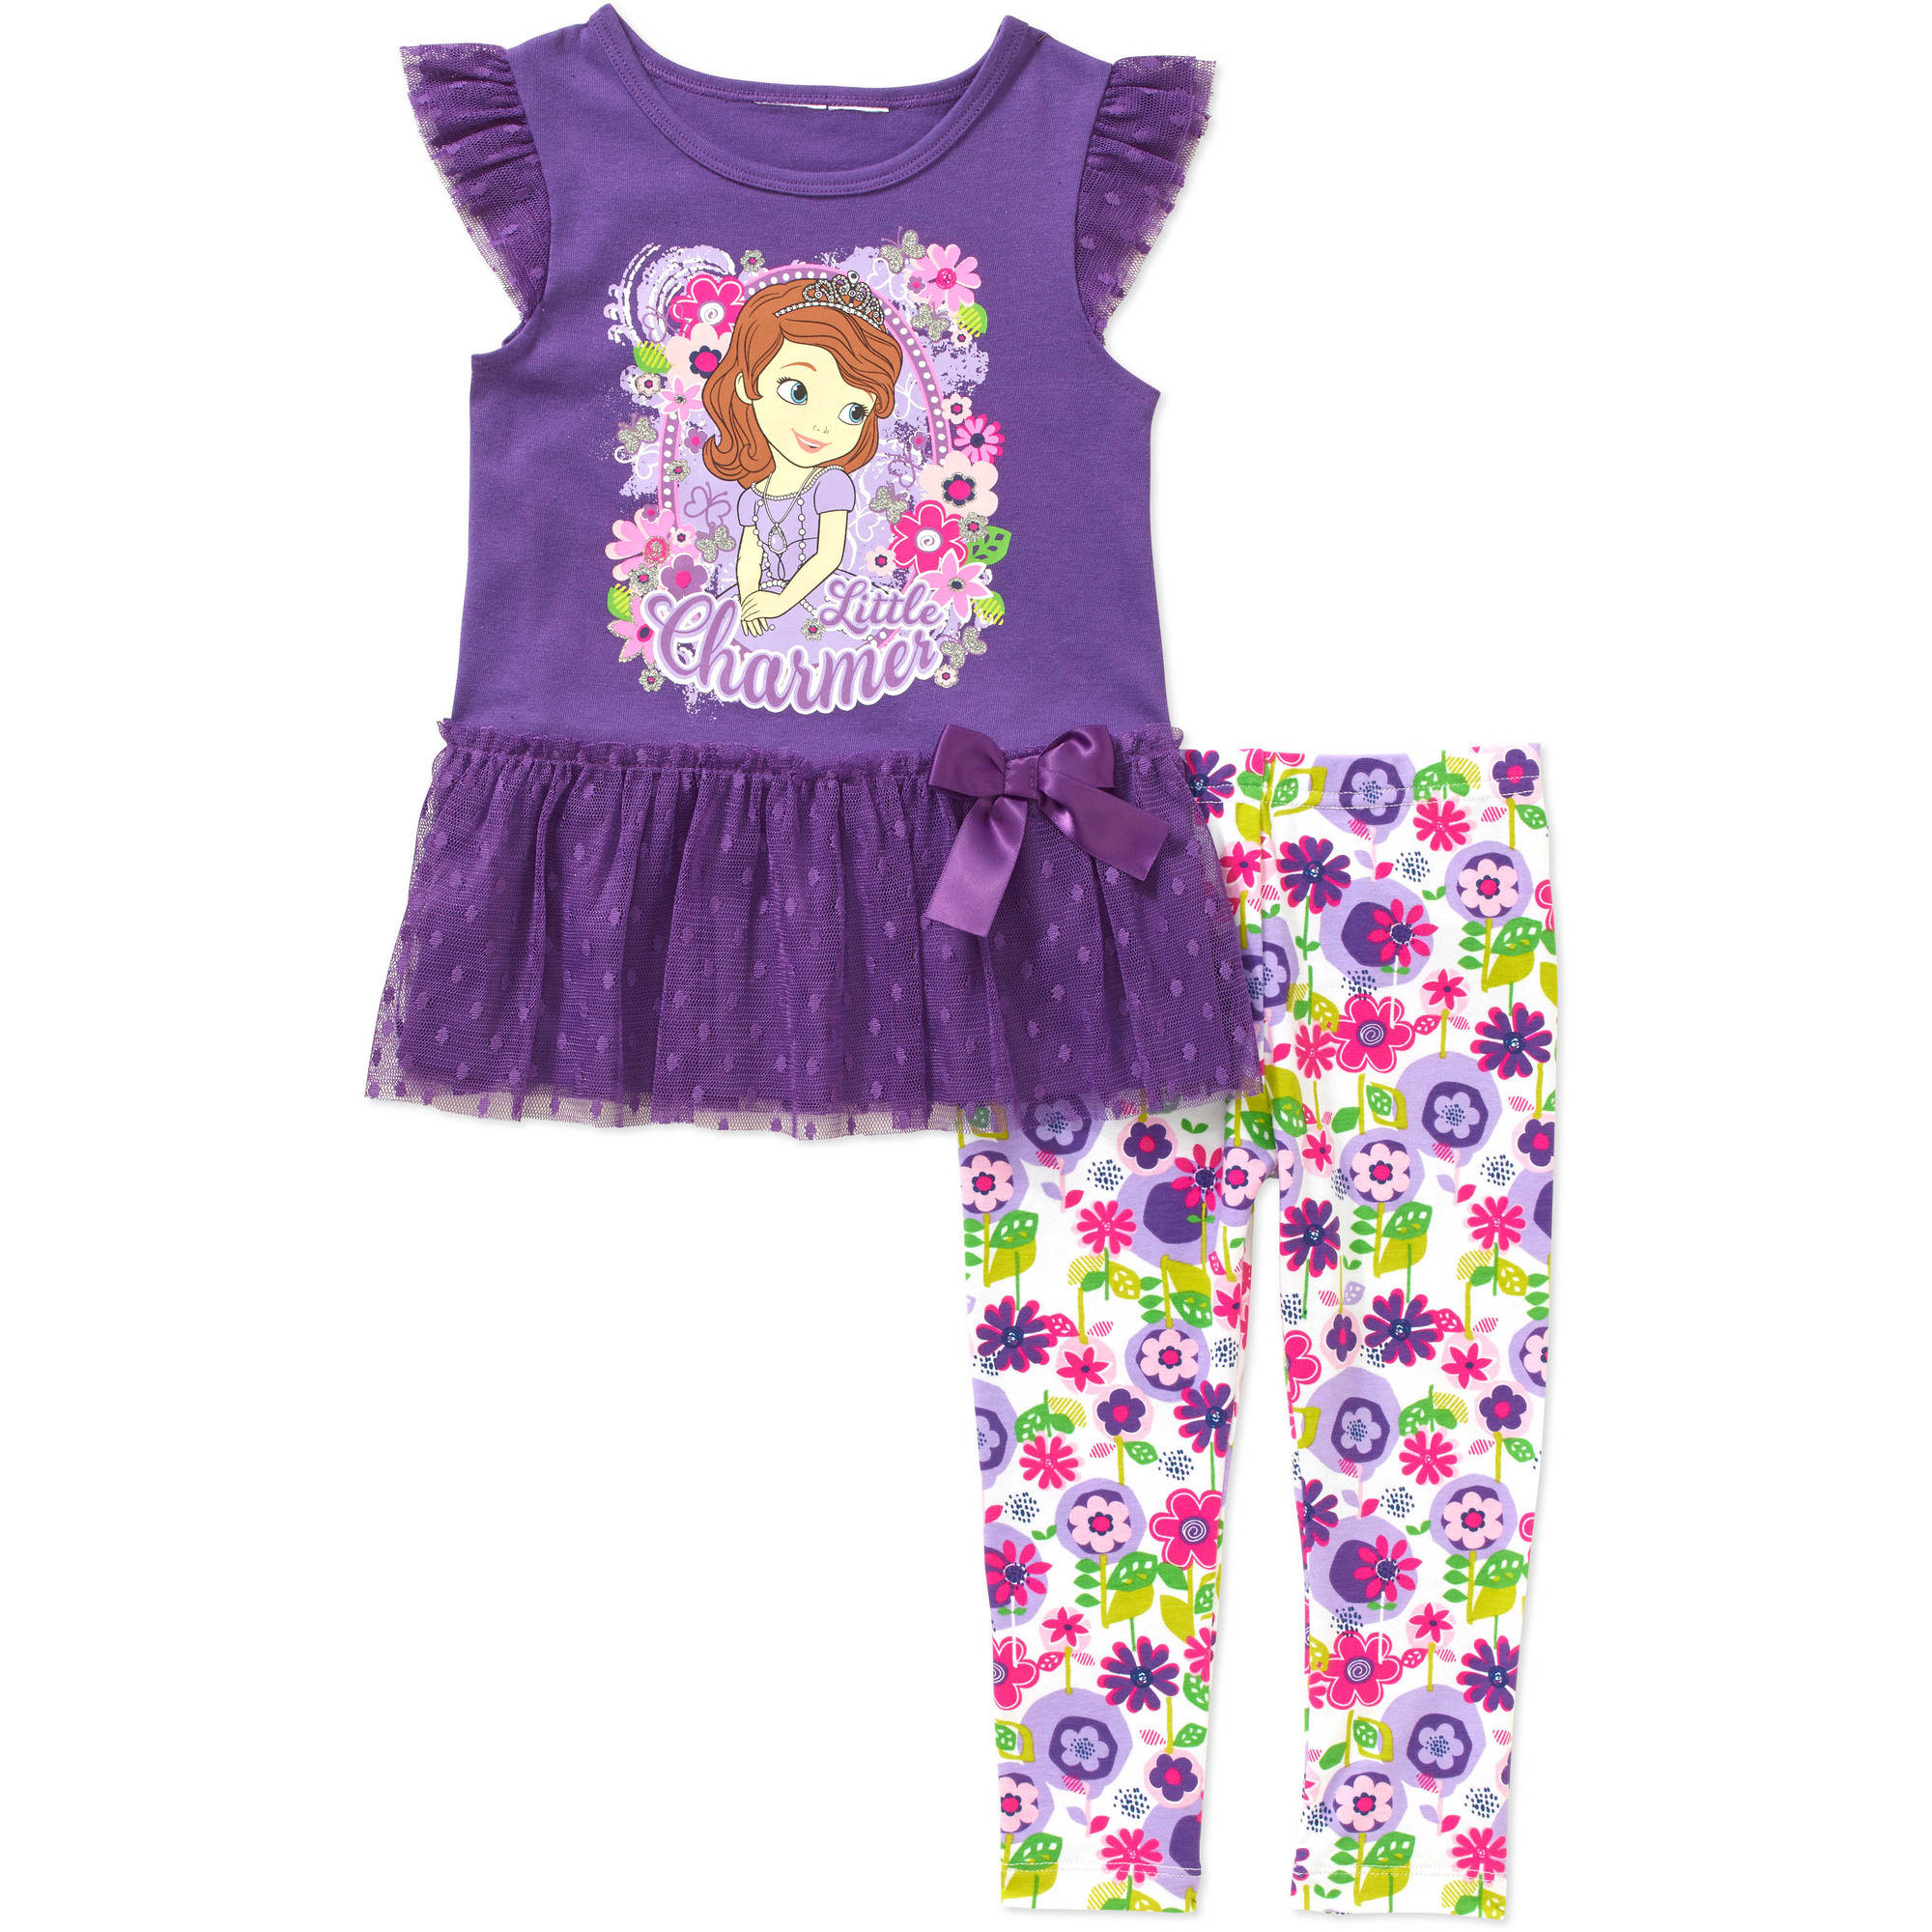 Disney Sofia the First Princess Toddler Girls' Skirted Tunic and Leggings Outfit Set